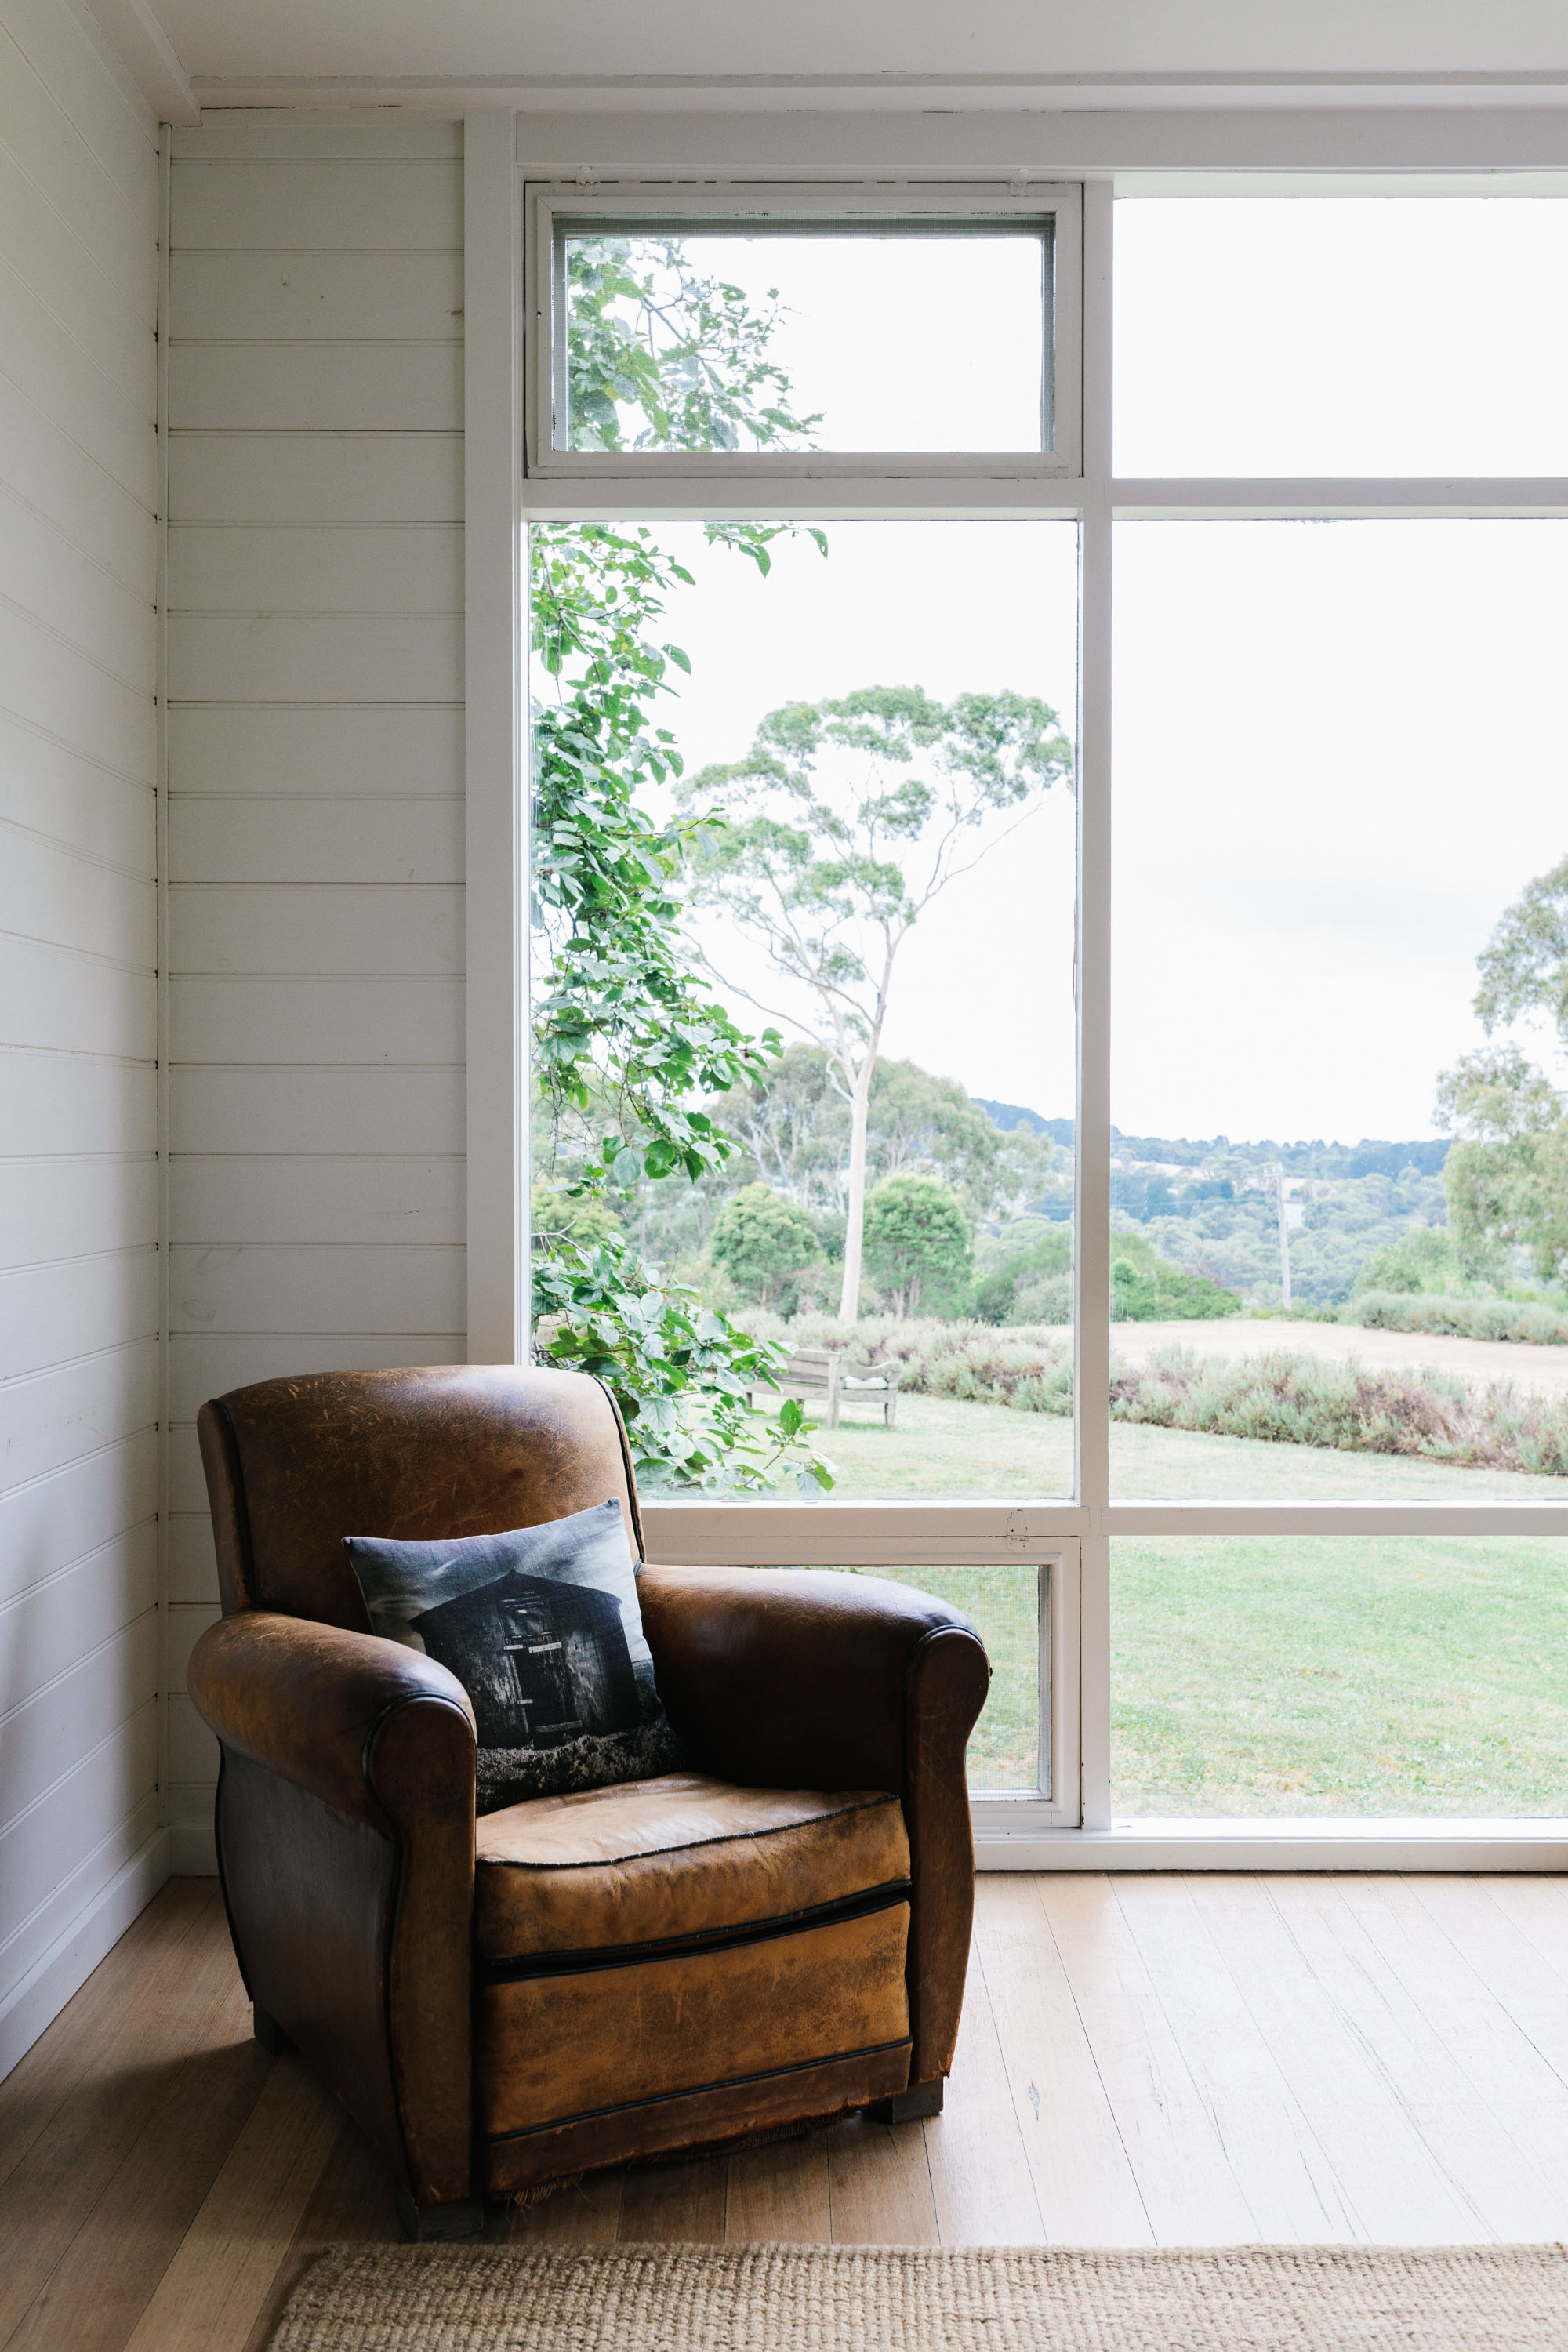 Marnie Hawson for The Downtime Agenda at Orchard Keepers, Red Hill